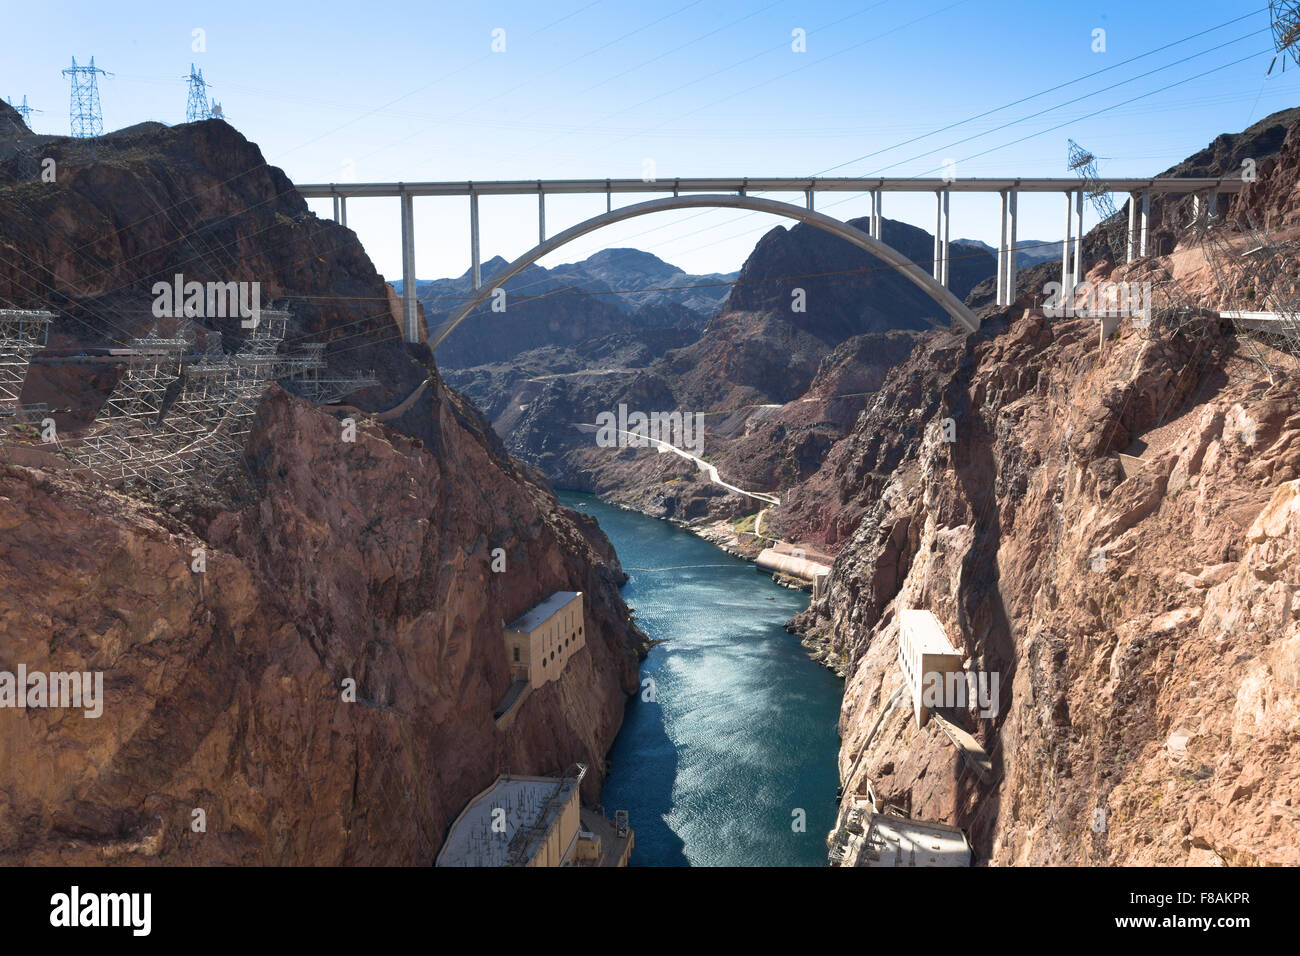 hoover dam a monument of americas ingenuity The hoover dam: a monument of ingenuity (american history american destinations) by gabriel, luke s and a great selection of similar used, new and collectible books available now at.